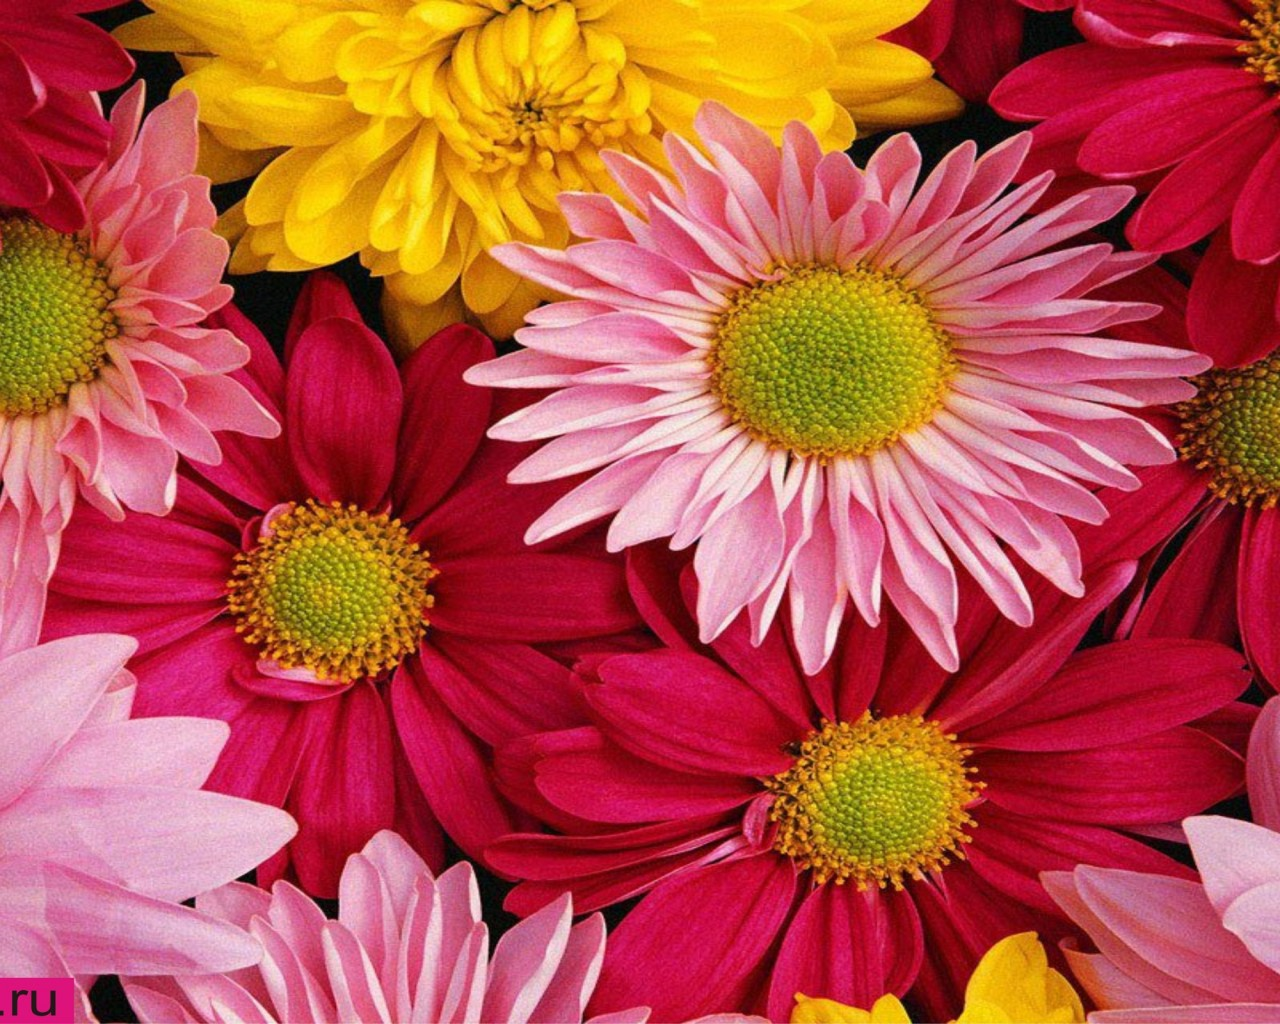 Pink Gerbera Daisy Wallpaper Pink Gerbera Flower Wallpaper 1280x1024